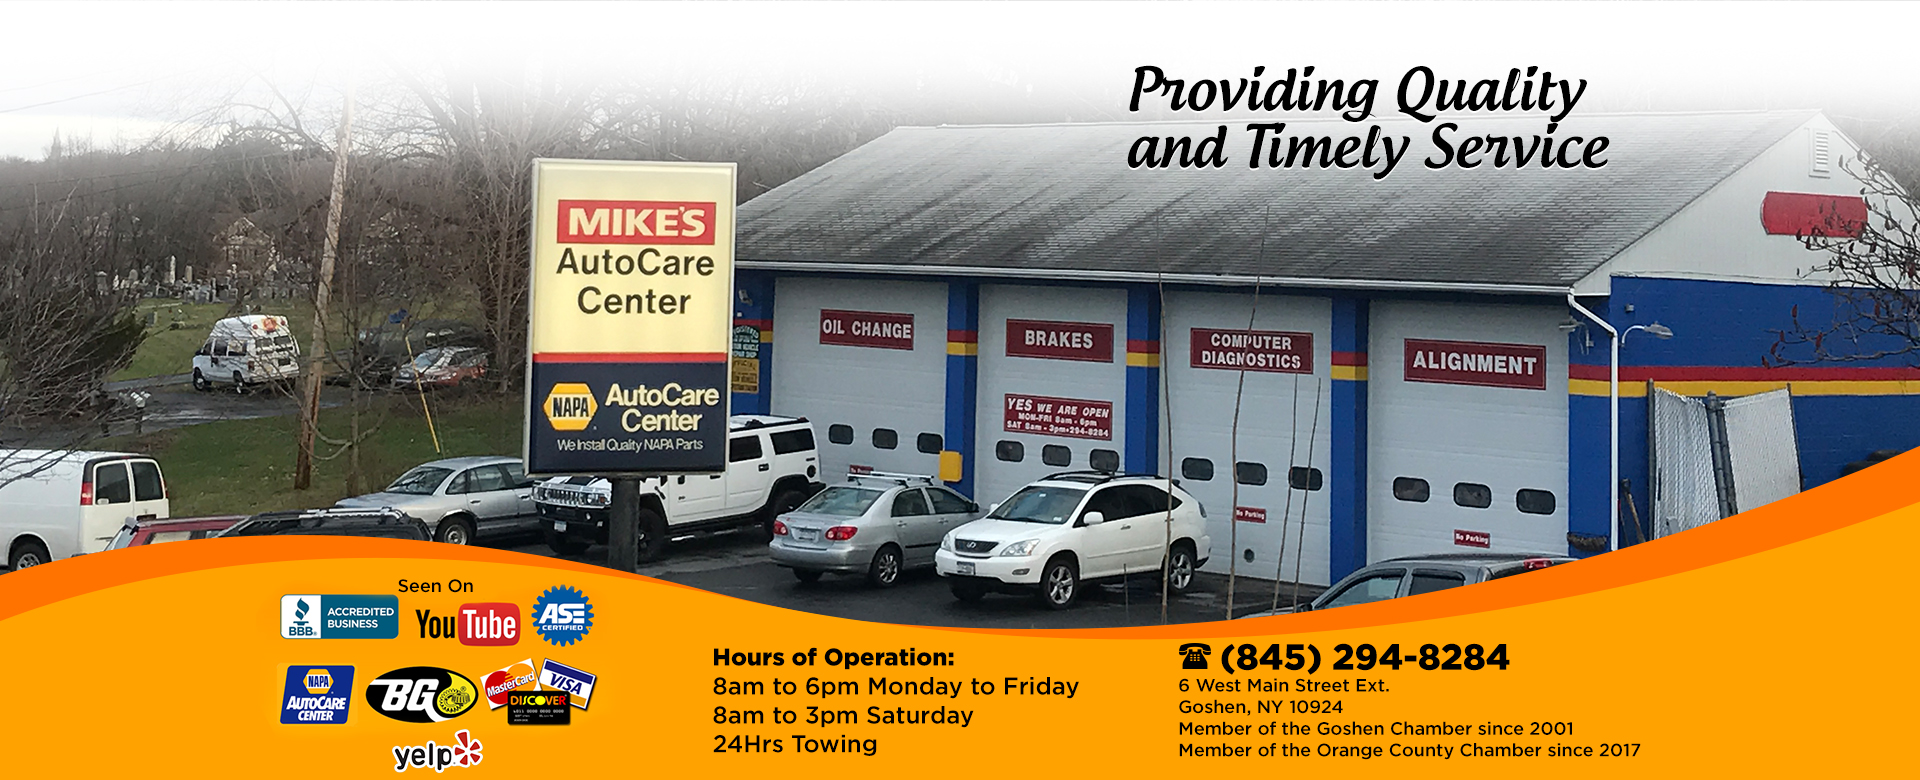 Mikes Auto Care Automotive Repair Used Car Sales At Electronics Center Inc We Specialize In Industrial Main Image